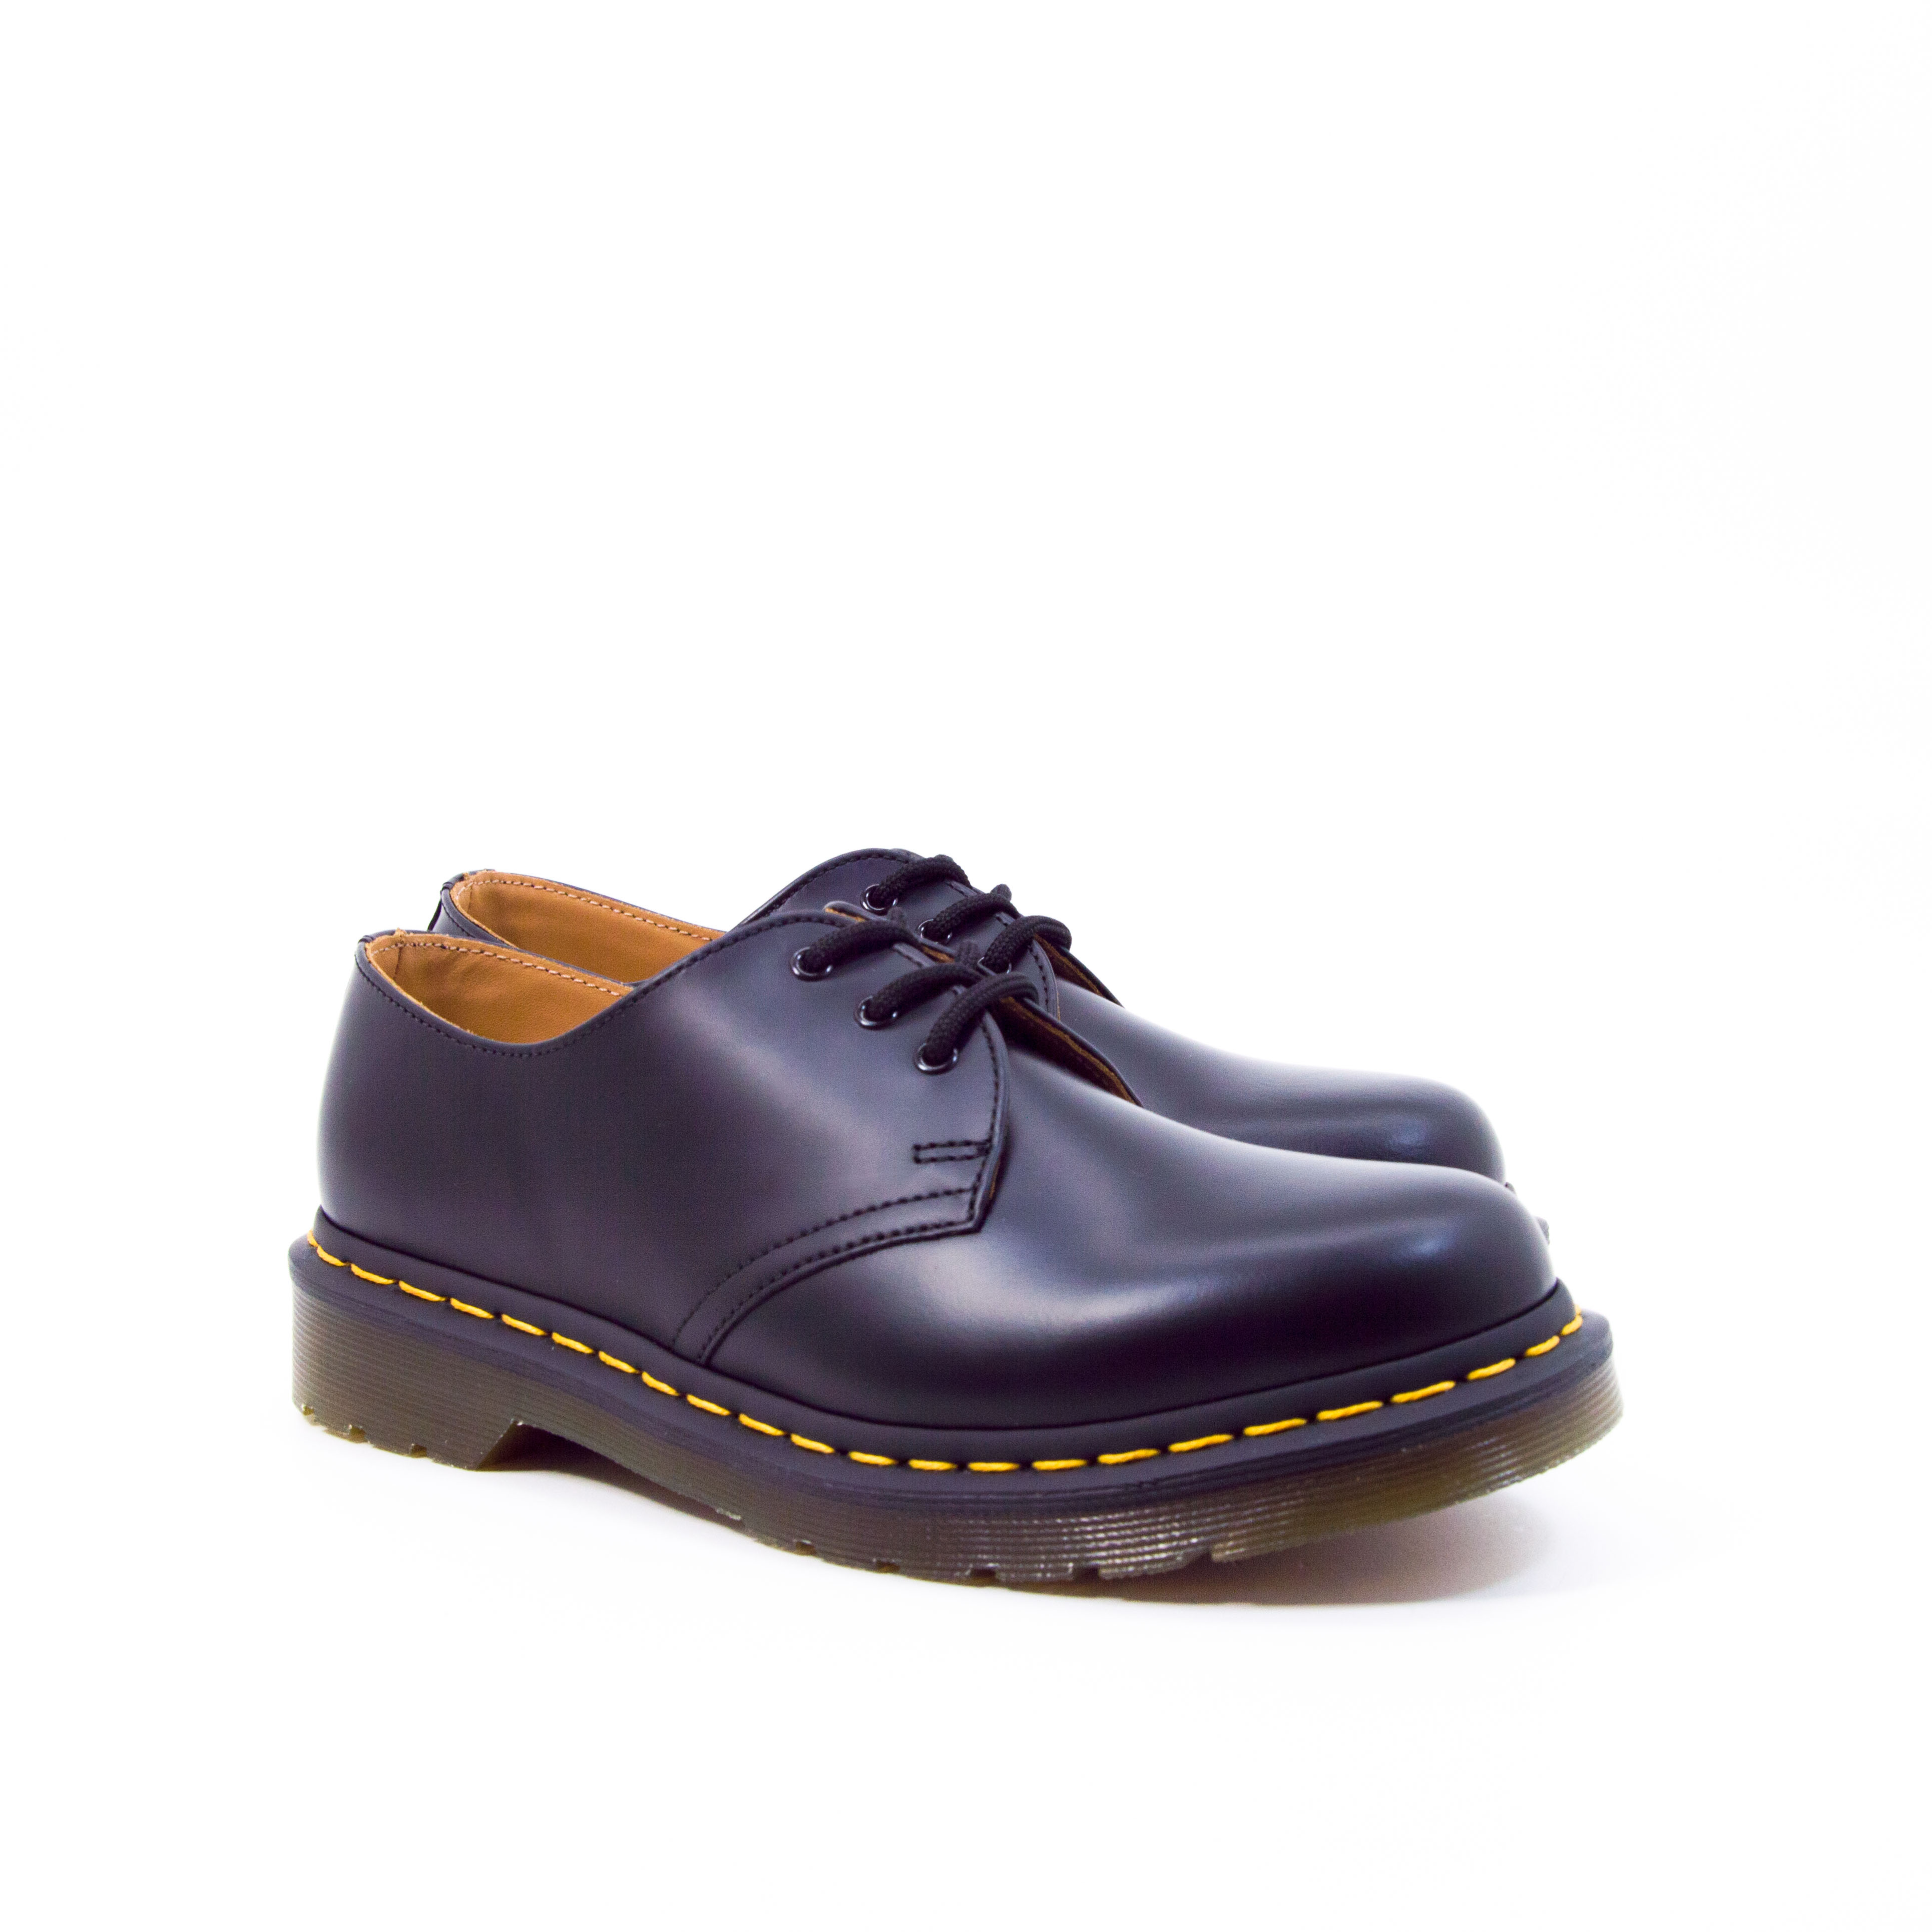 Dr. Martens - 1461 - Black Smooth